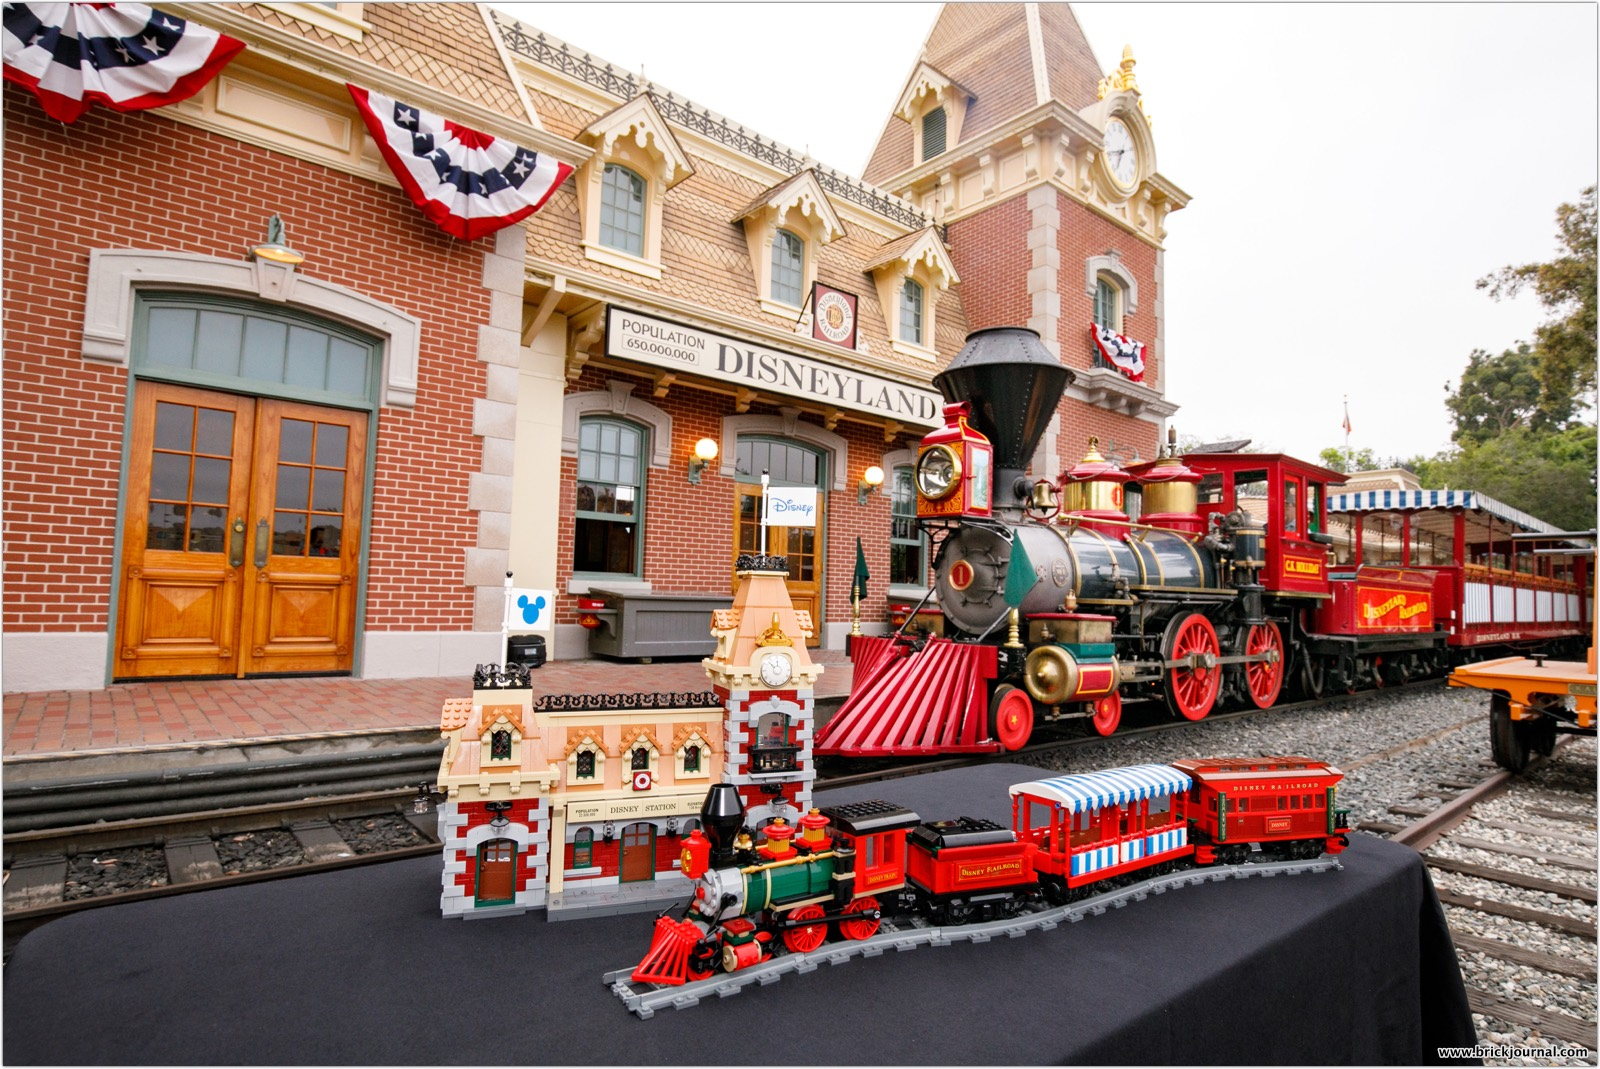 Celebrate the magic with the LEGO® Disney Train and Station!